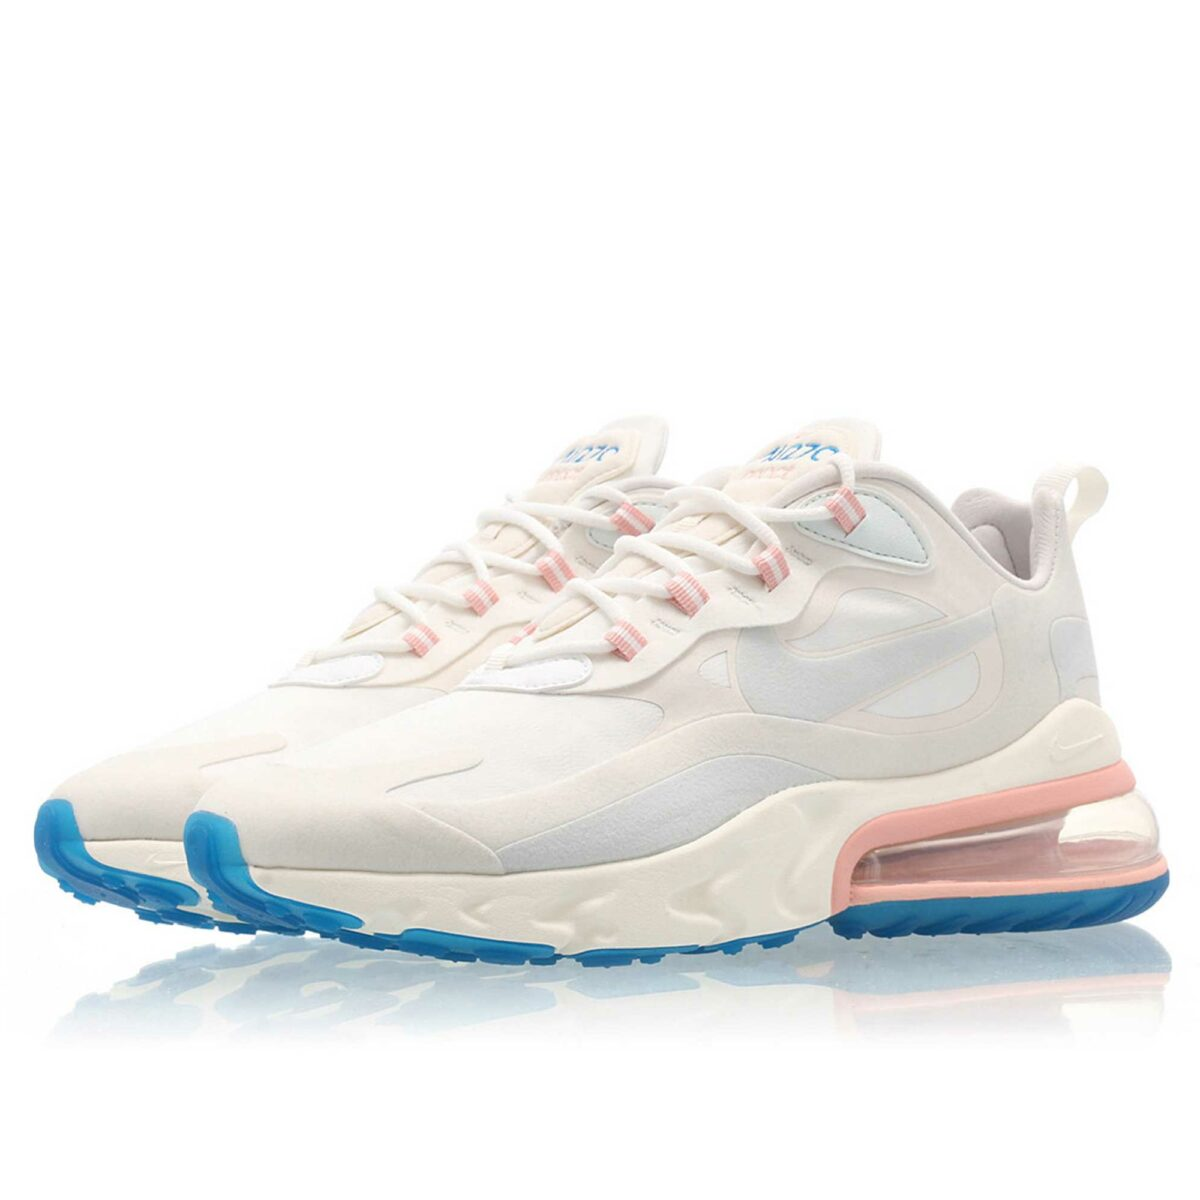 nike air max 270 react summit white ao4971_100 купить